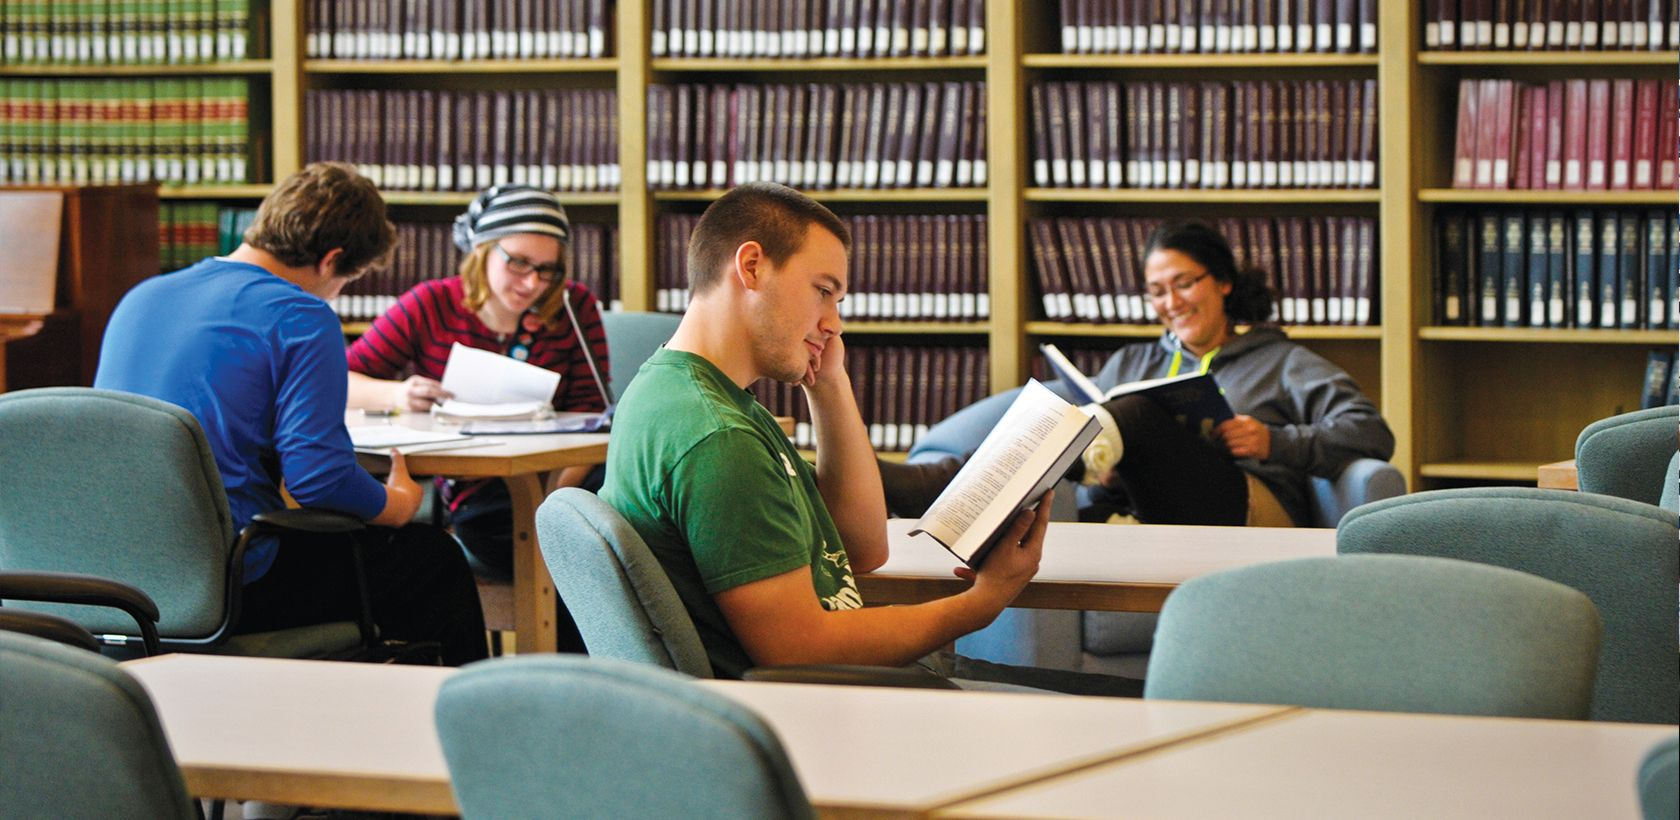 Image of Liberal Arts students studying in Archbishop Alter Library at Mount St. Joseph University